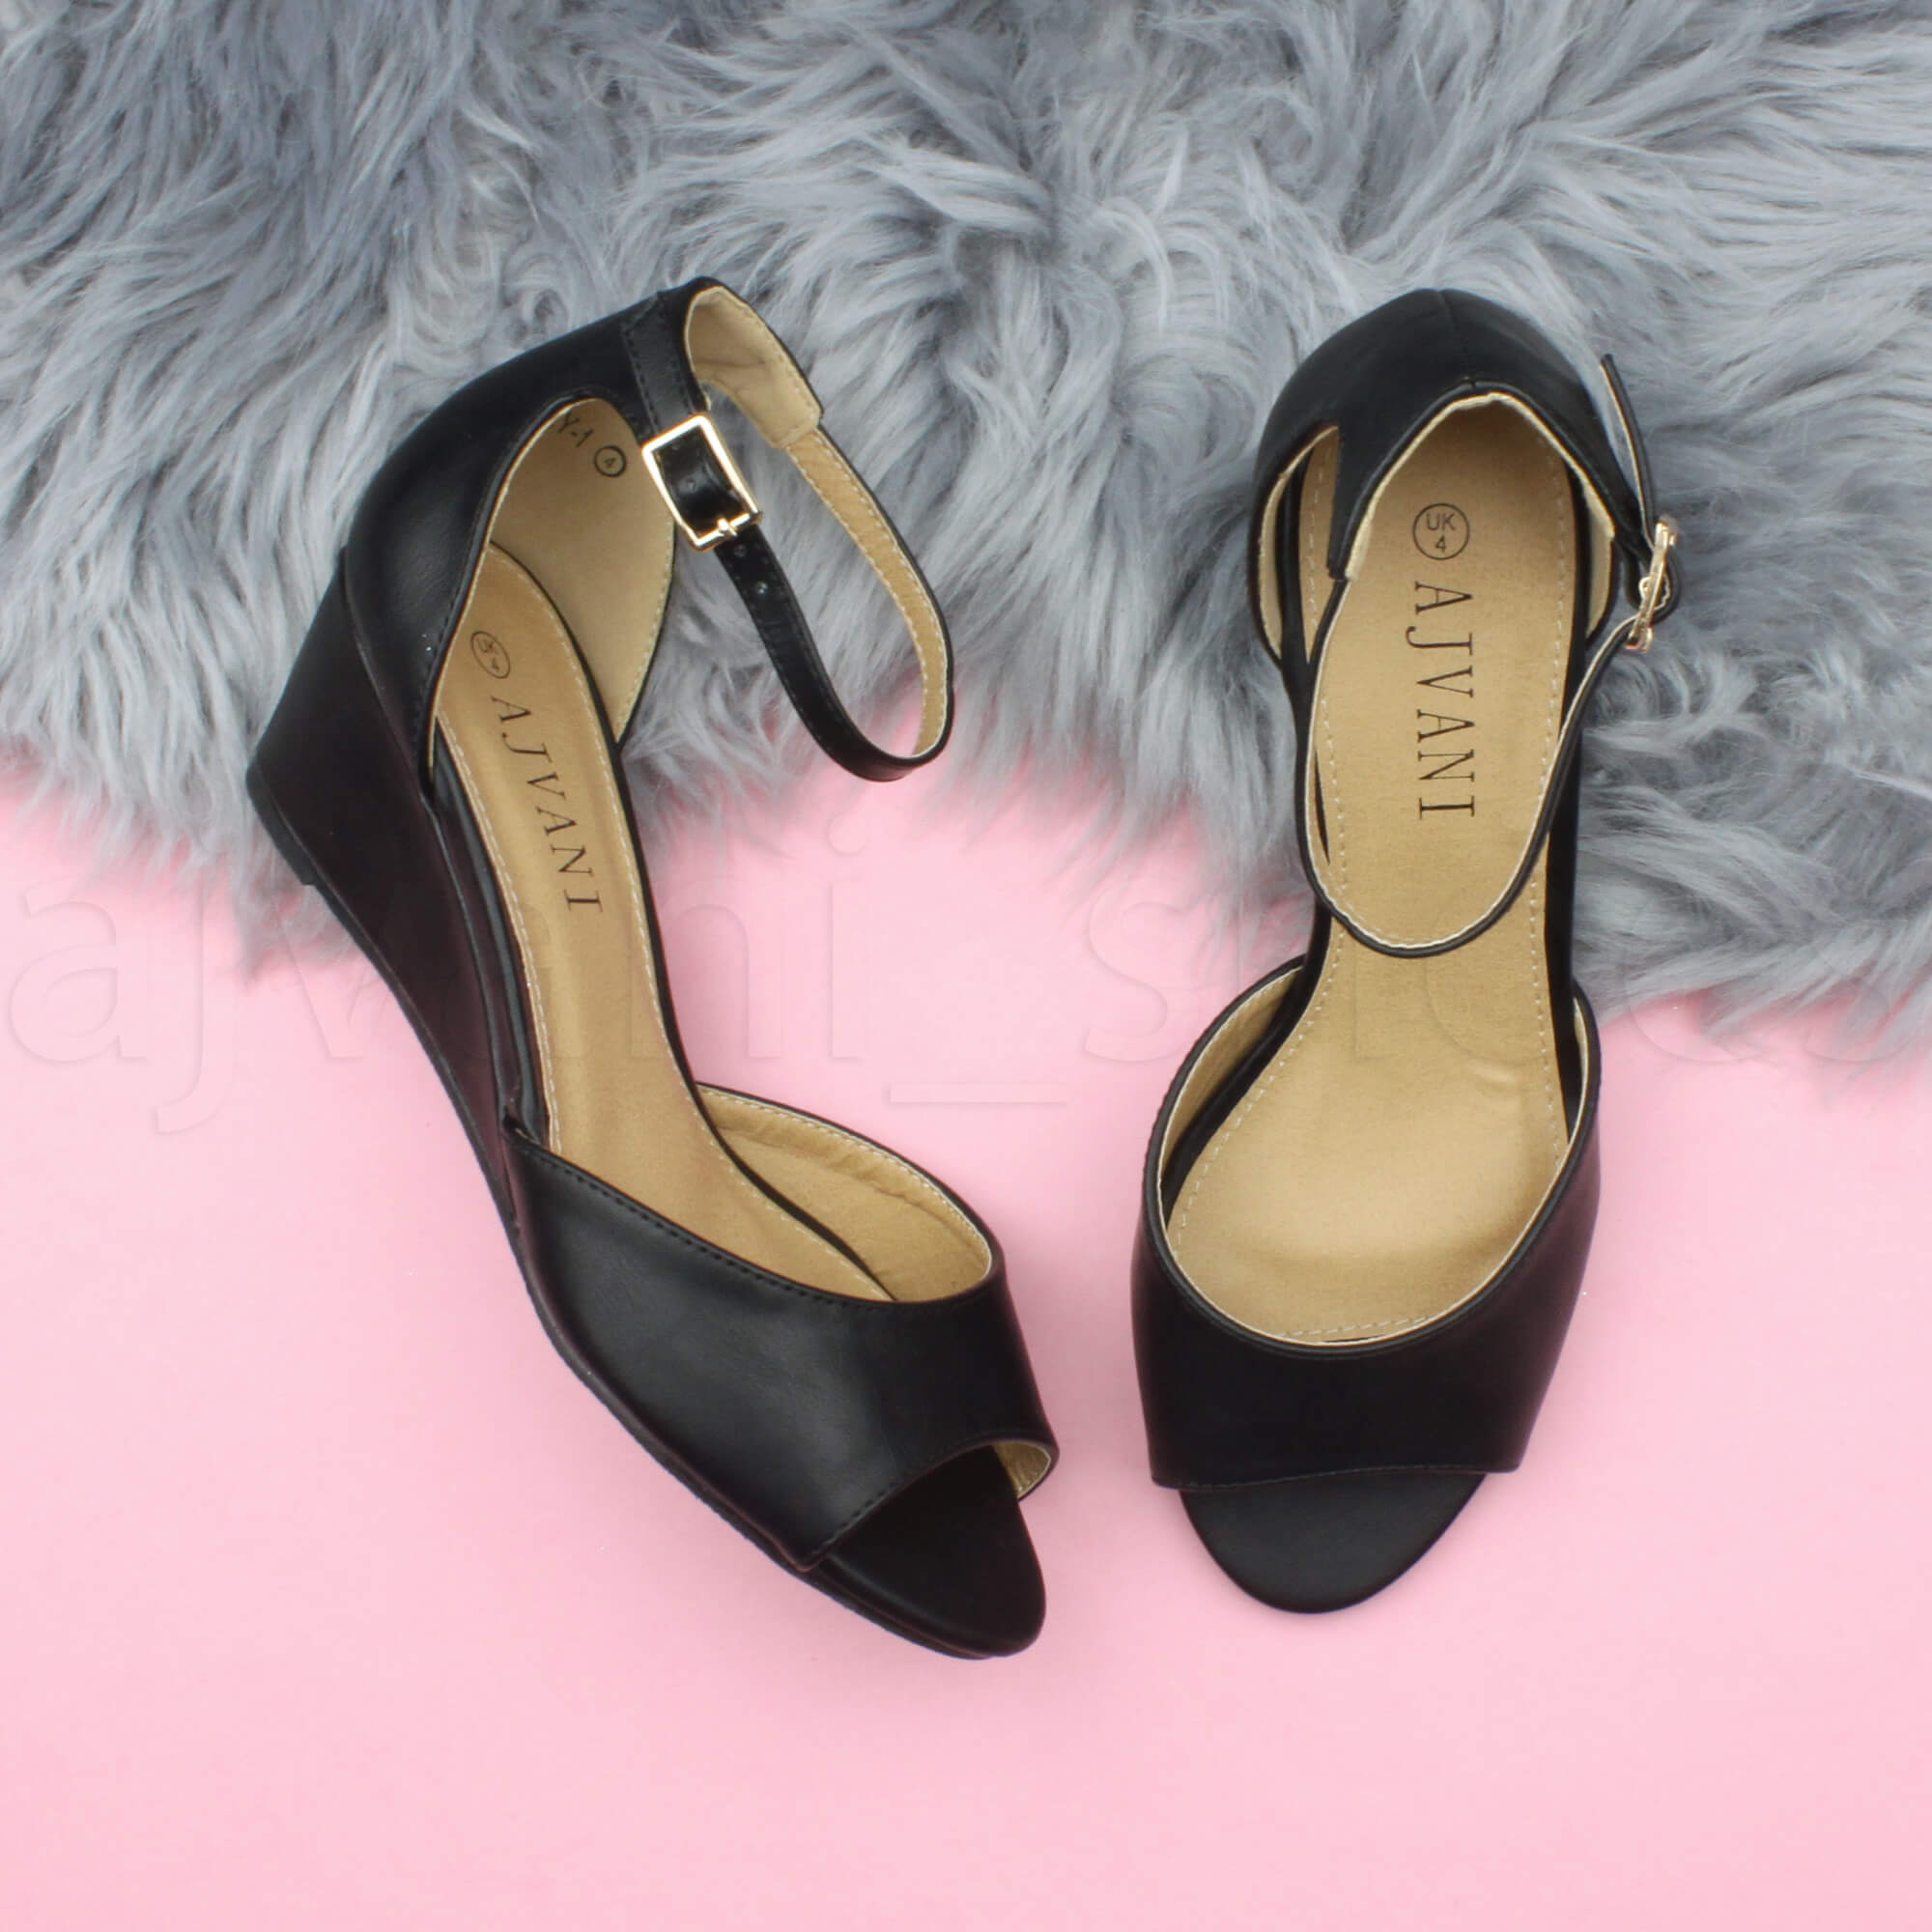 WOMENS-LADIES-LOW-MID-WEDGE-HEEL-ANKLE-STRAP-SMART-CASUAL-EVENING-SANDALS-SIZE thumbnail 5